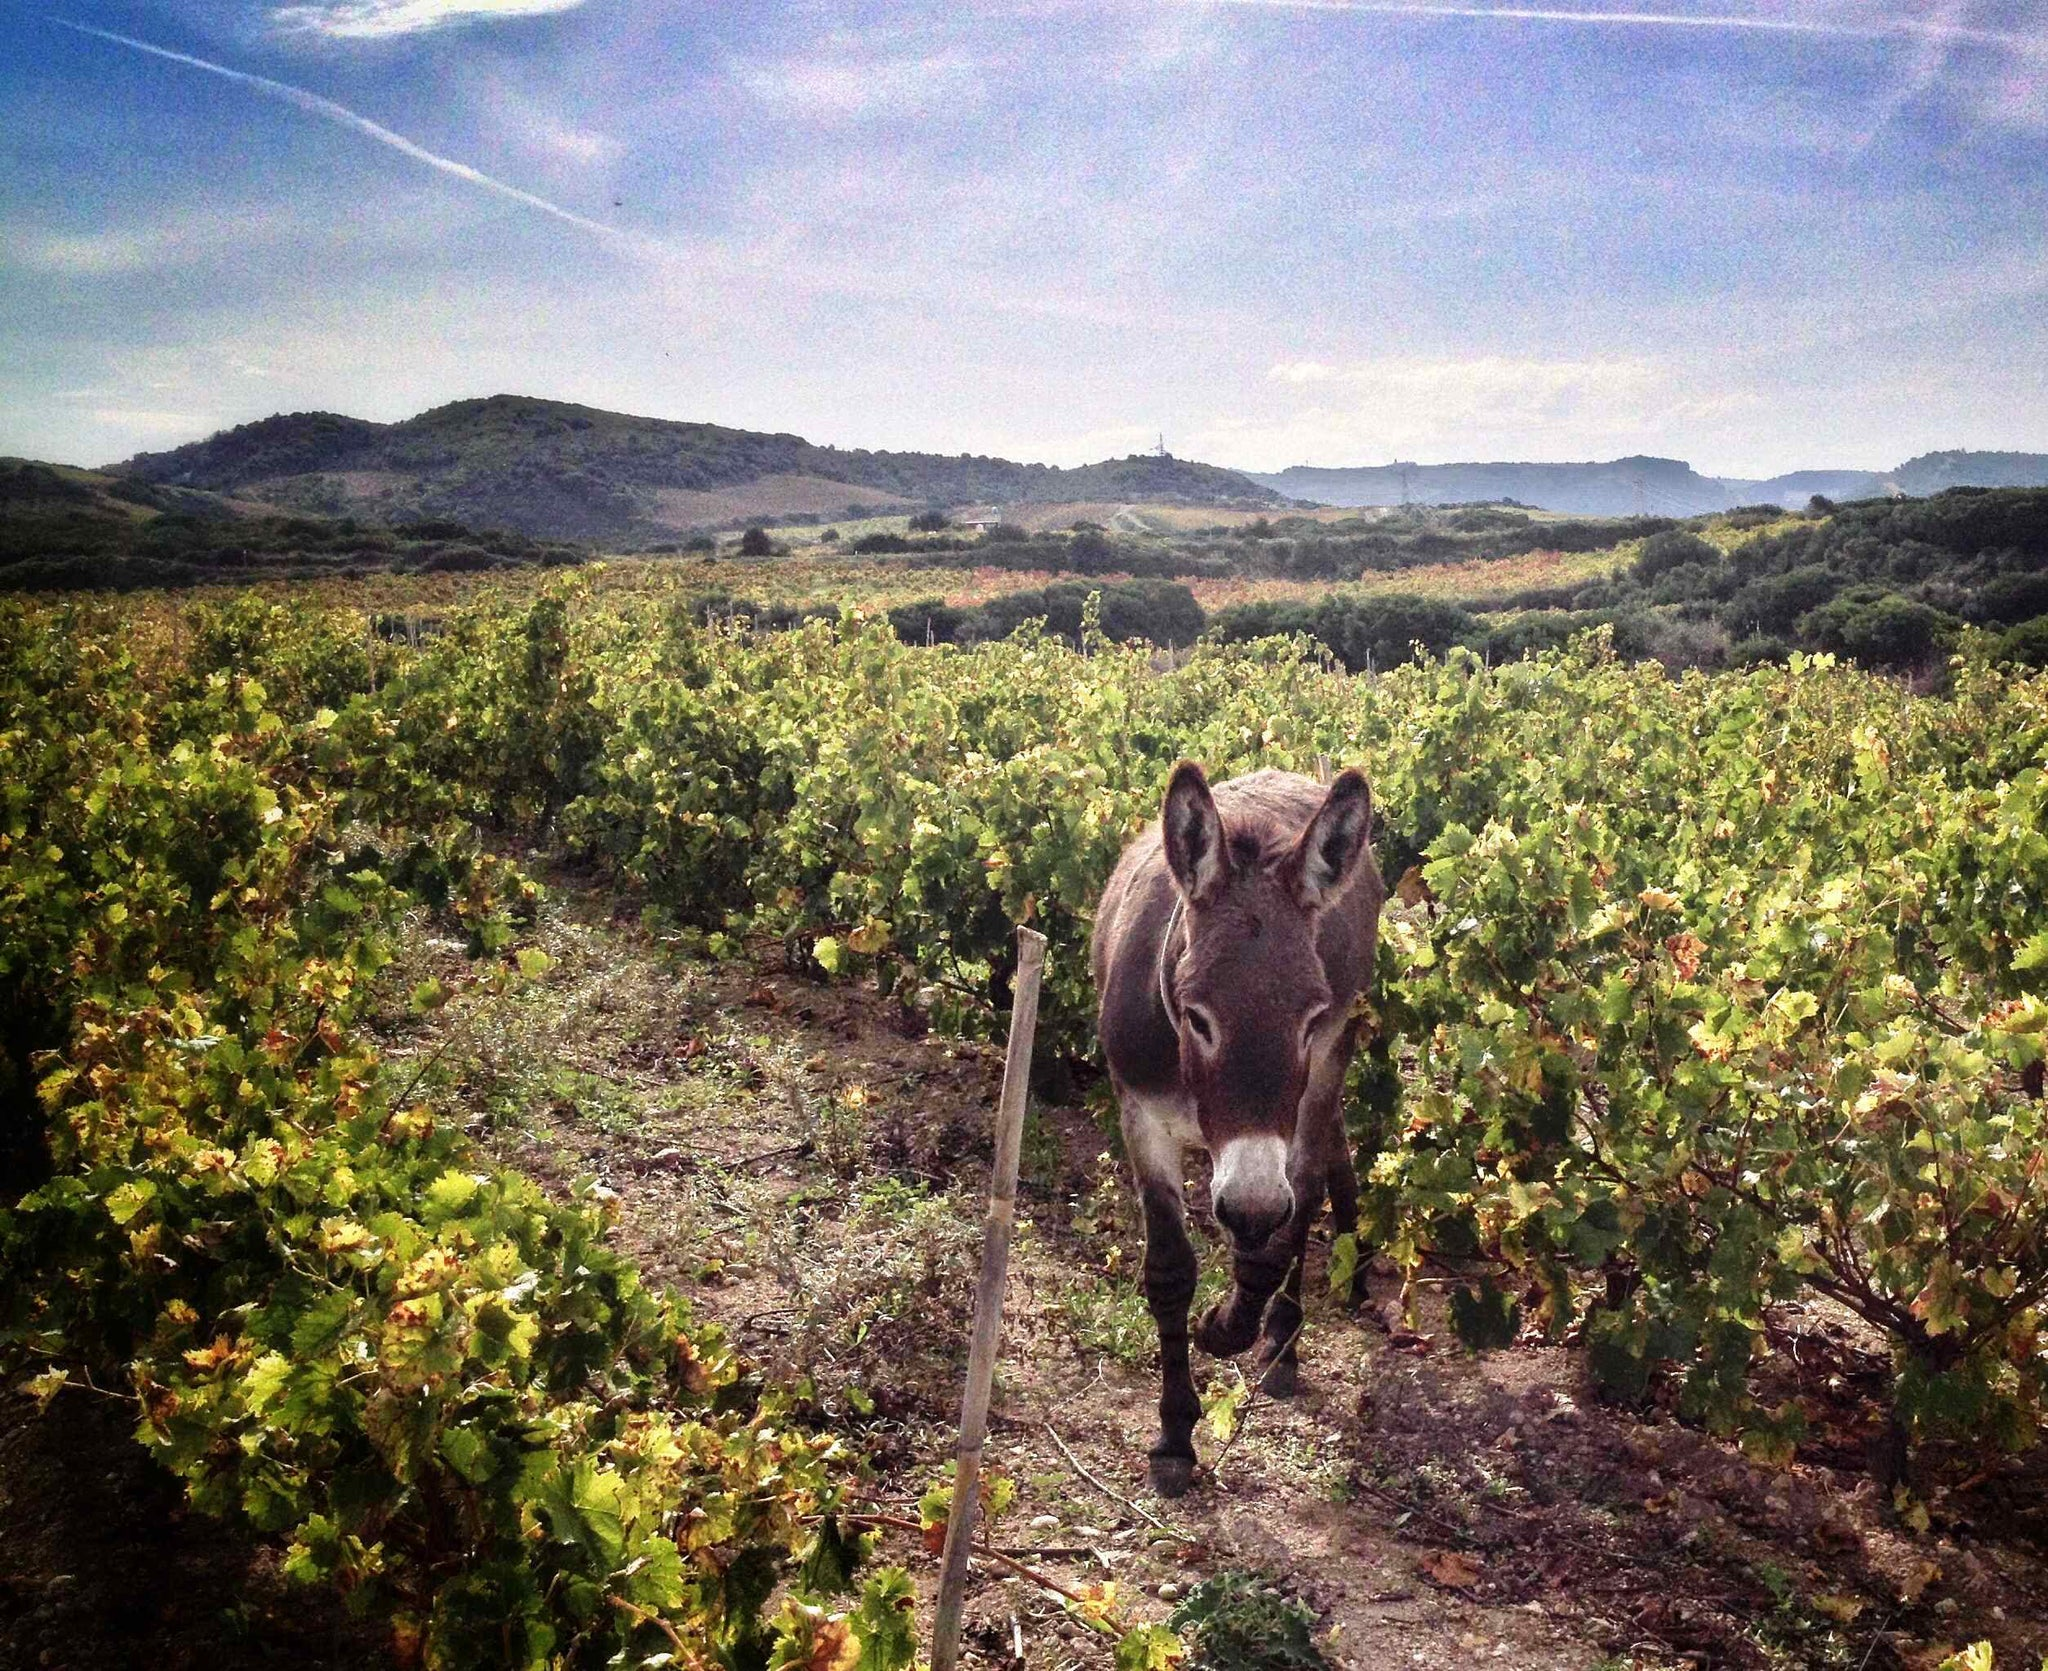 Tenute Dettori natural wine biodynamic wine estate located in Sardinia, Italy